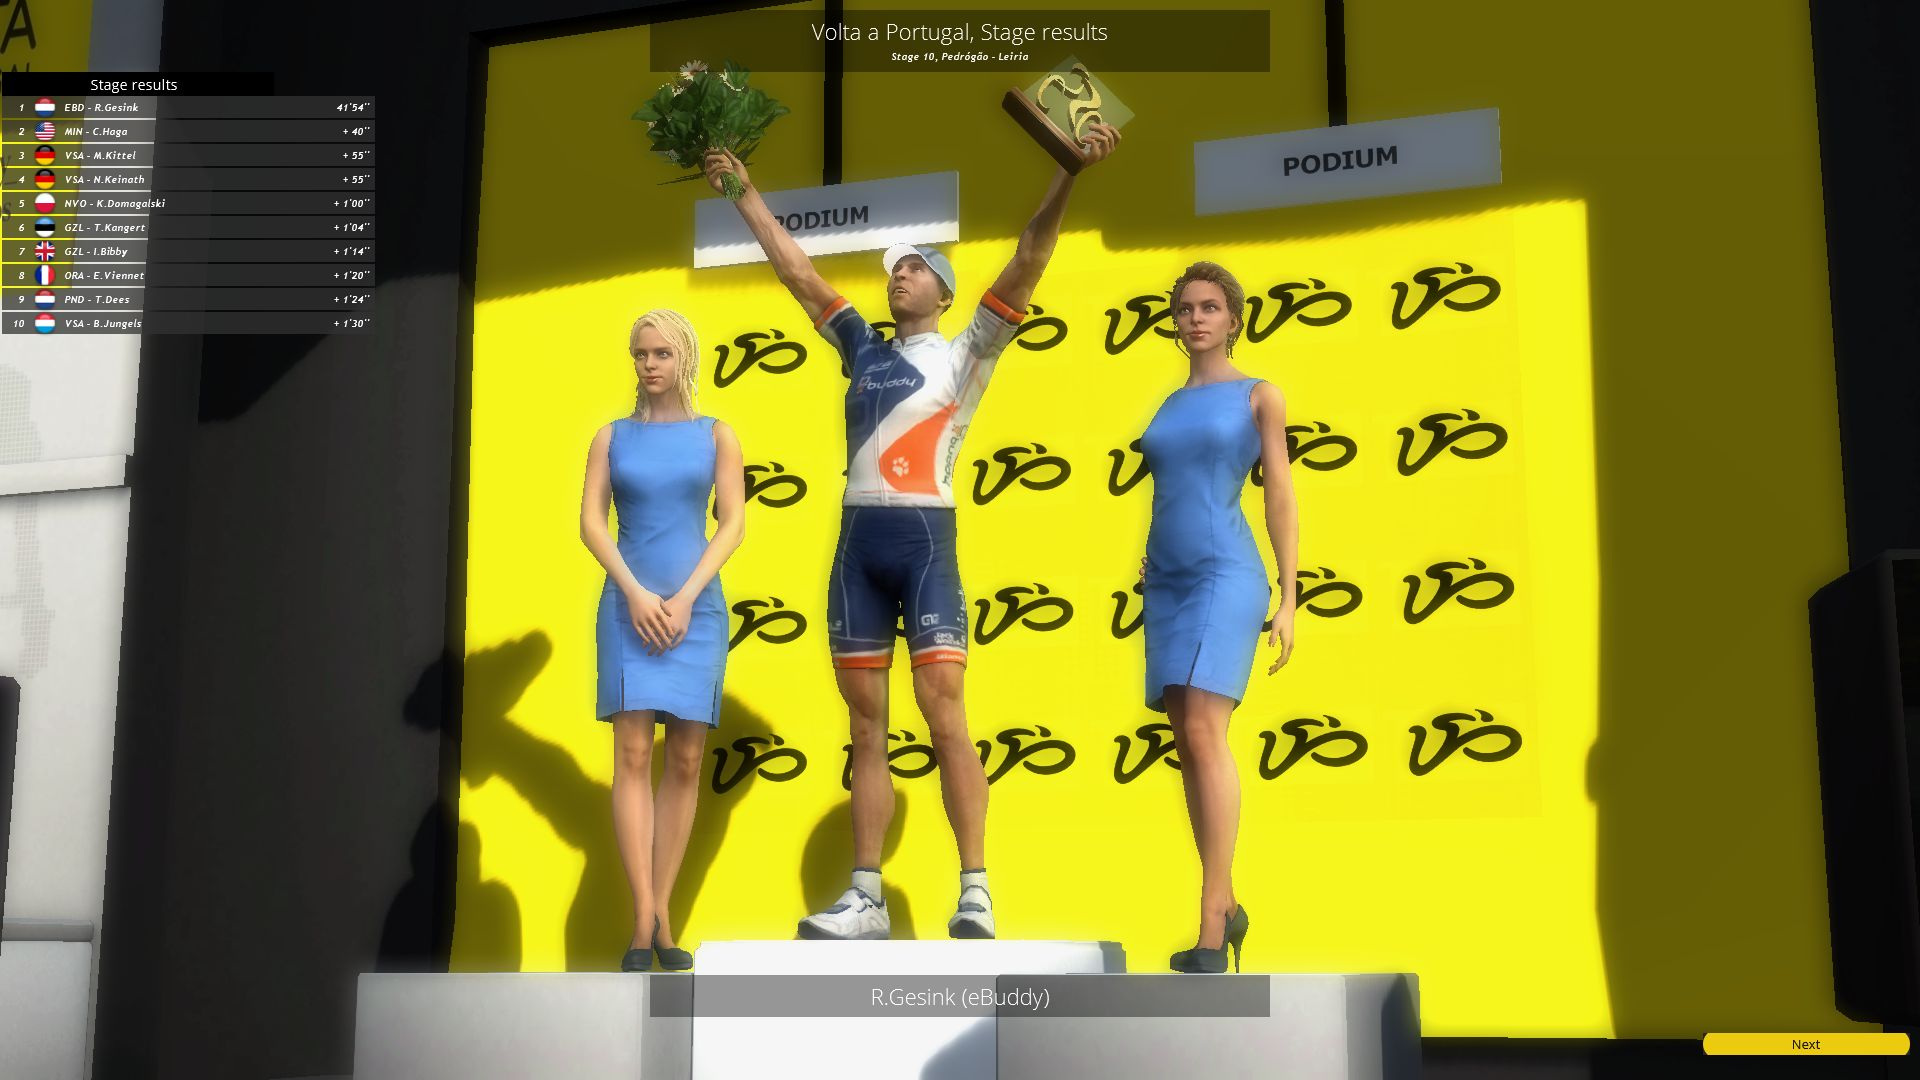 pcmdaily.com/images/mg/2017/Races/PTHC/Portugal/TDPS10%2026.jpg